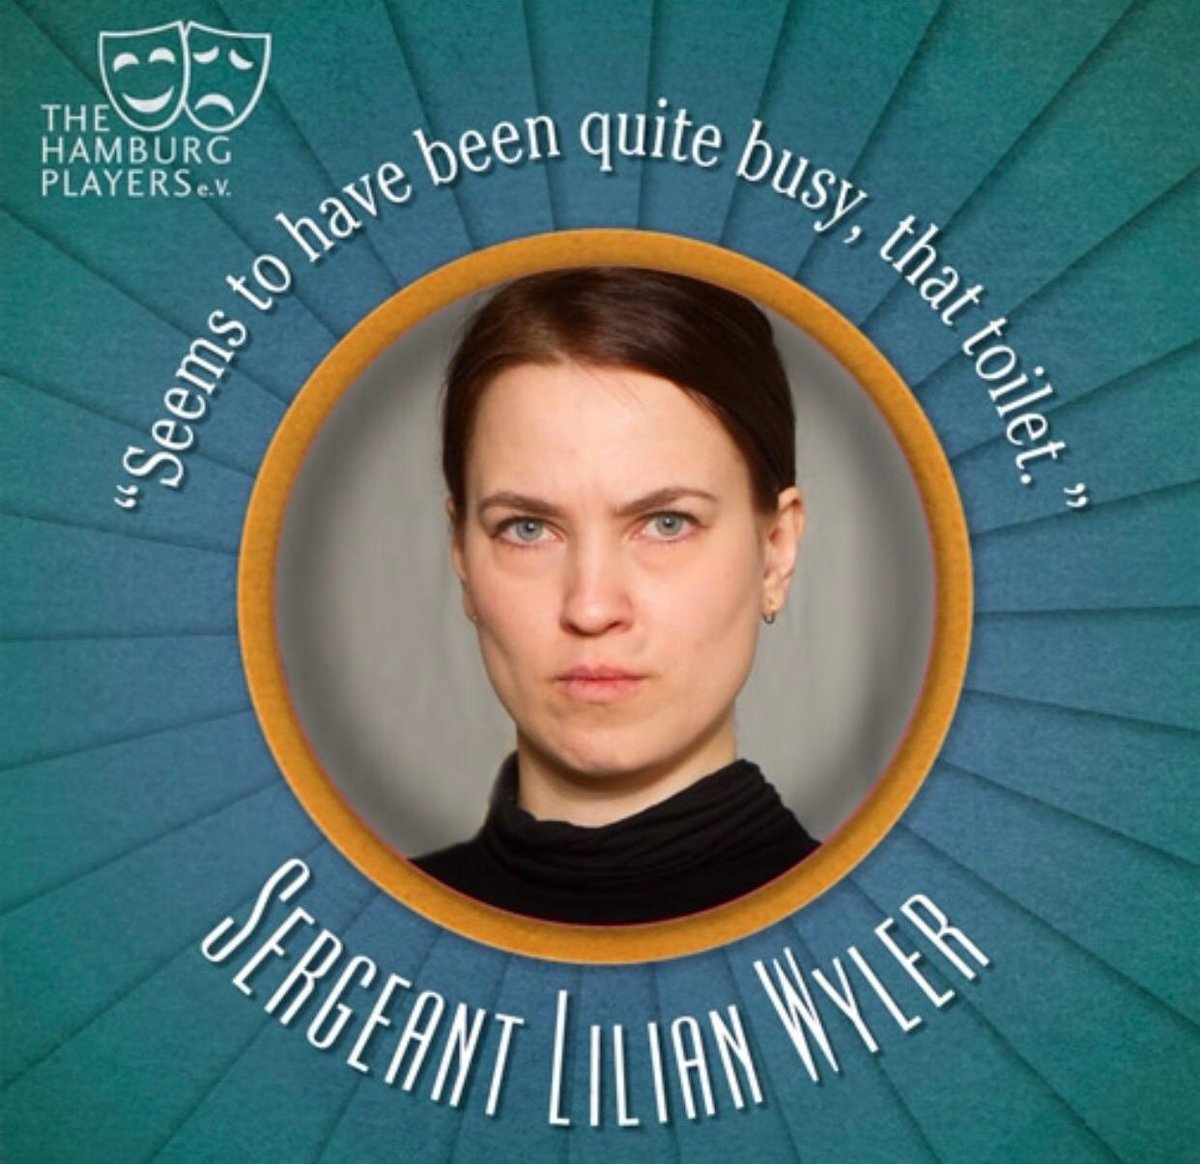 """Matter of fact! Meet Sergeant Lilian Wyler, who mixes both seriousness and humour in single statements all while trying to find out exactly what has happened in """"Death in High Heels"""" http://www.hamburgplayers.de  #theatre #theatrical #theaterinhamburg #thehamburgplayers #englishpic.twitter.com/8J7d7TW6MG"""